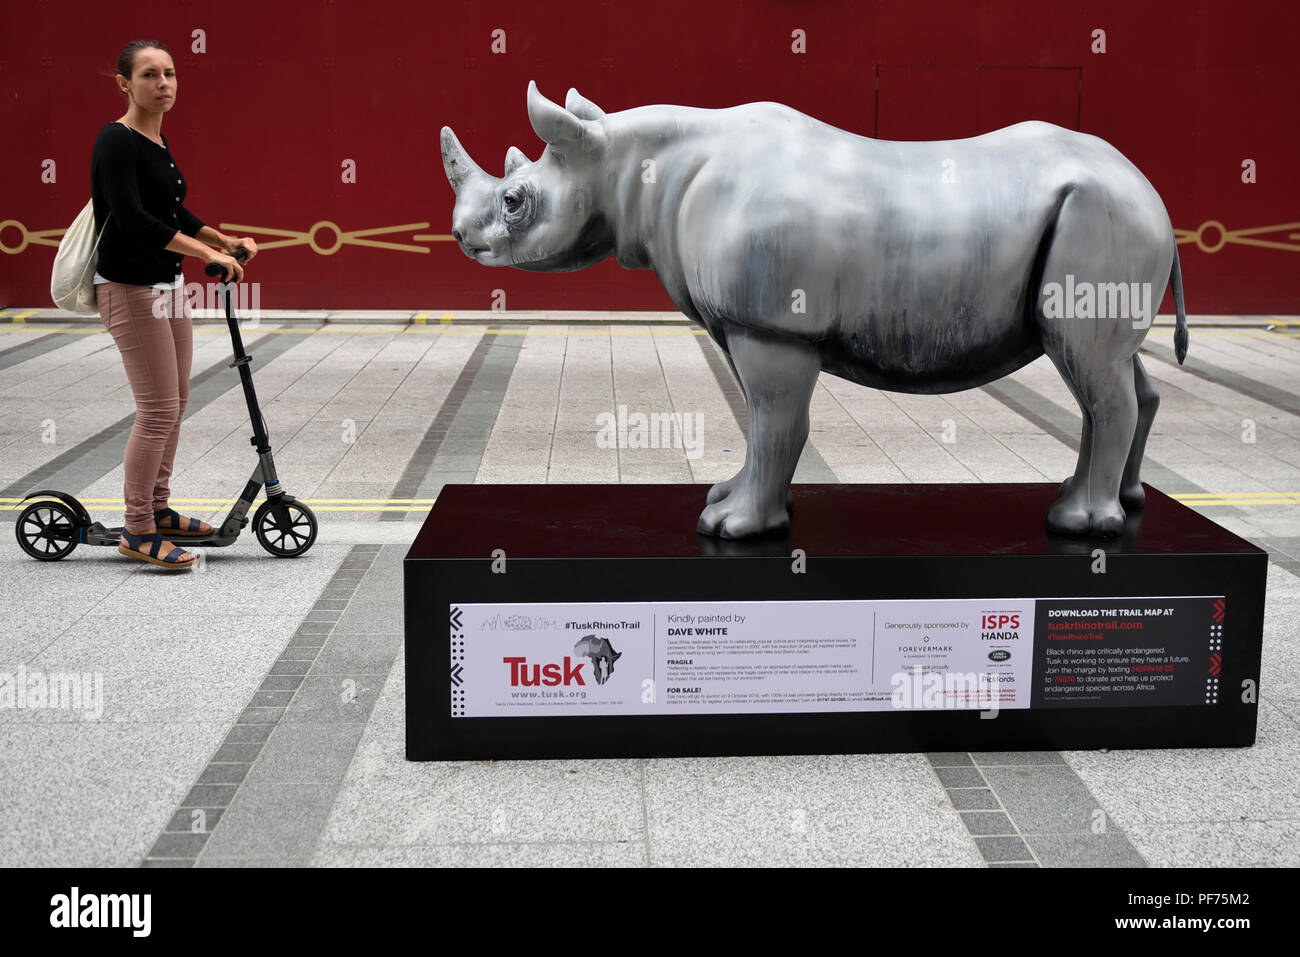 Painted Rhinos Stock Photos & Painted Rhinos Stock Images - Alamy